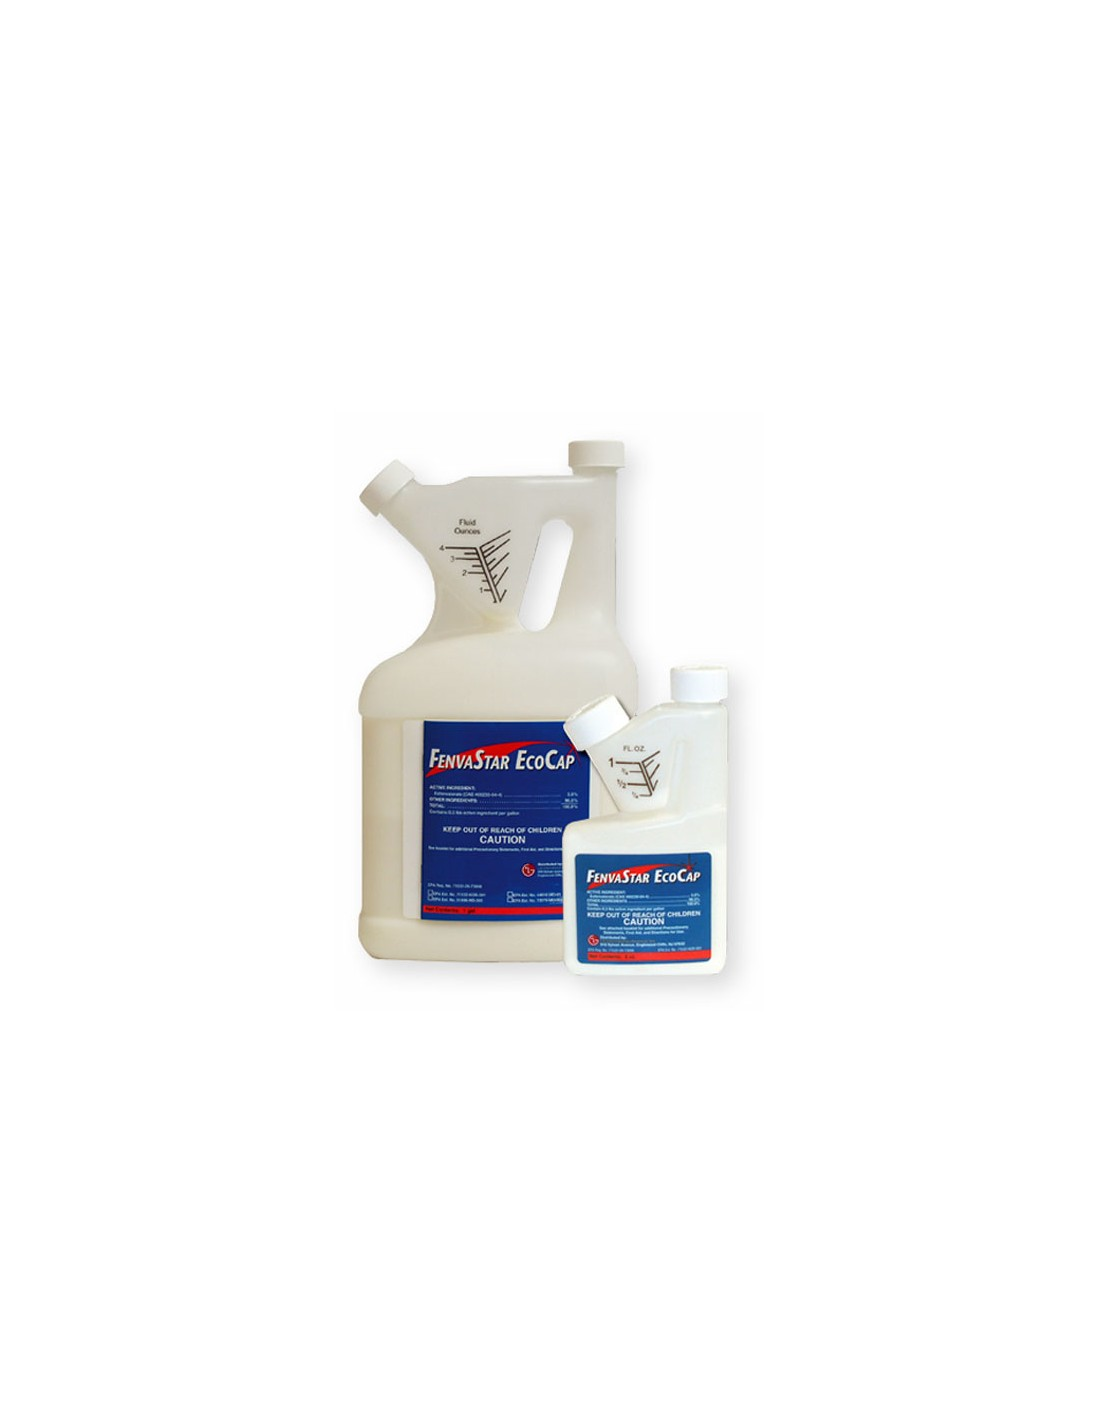 How many hours we should stay out of the house after application of fenvastar.